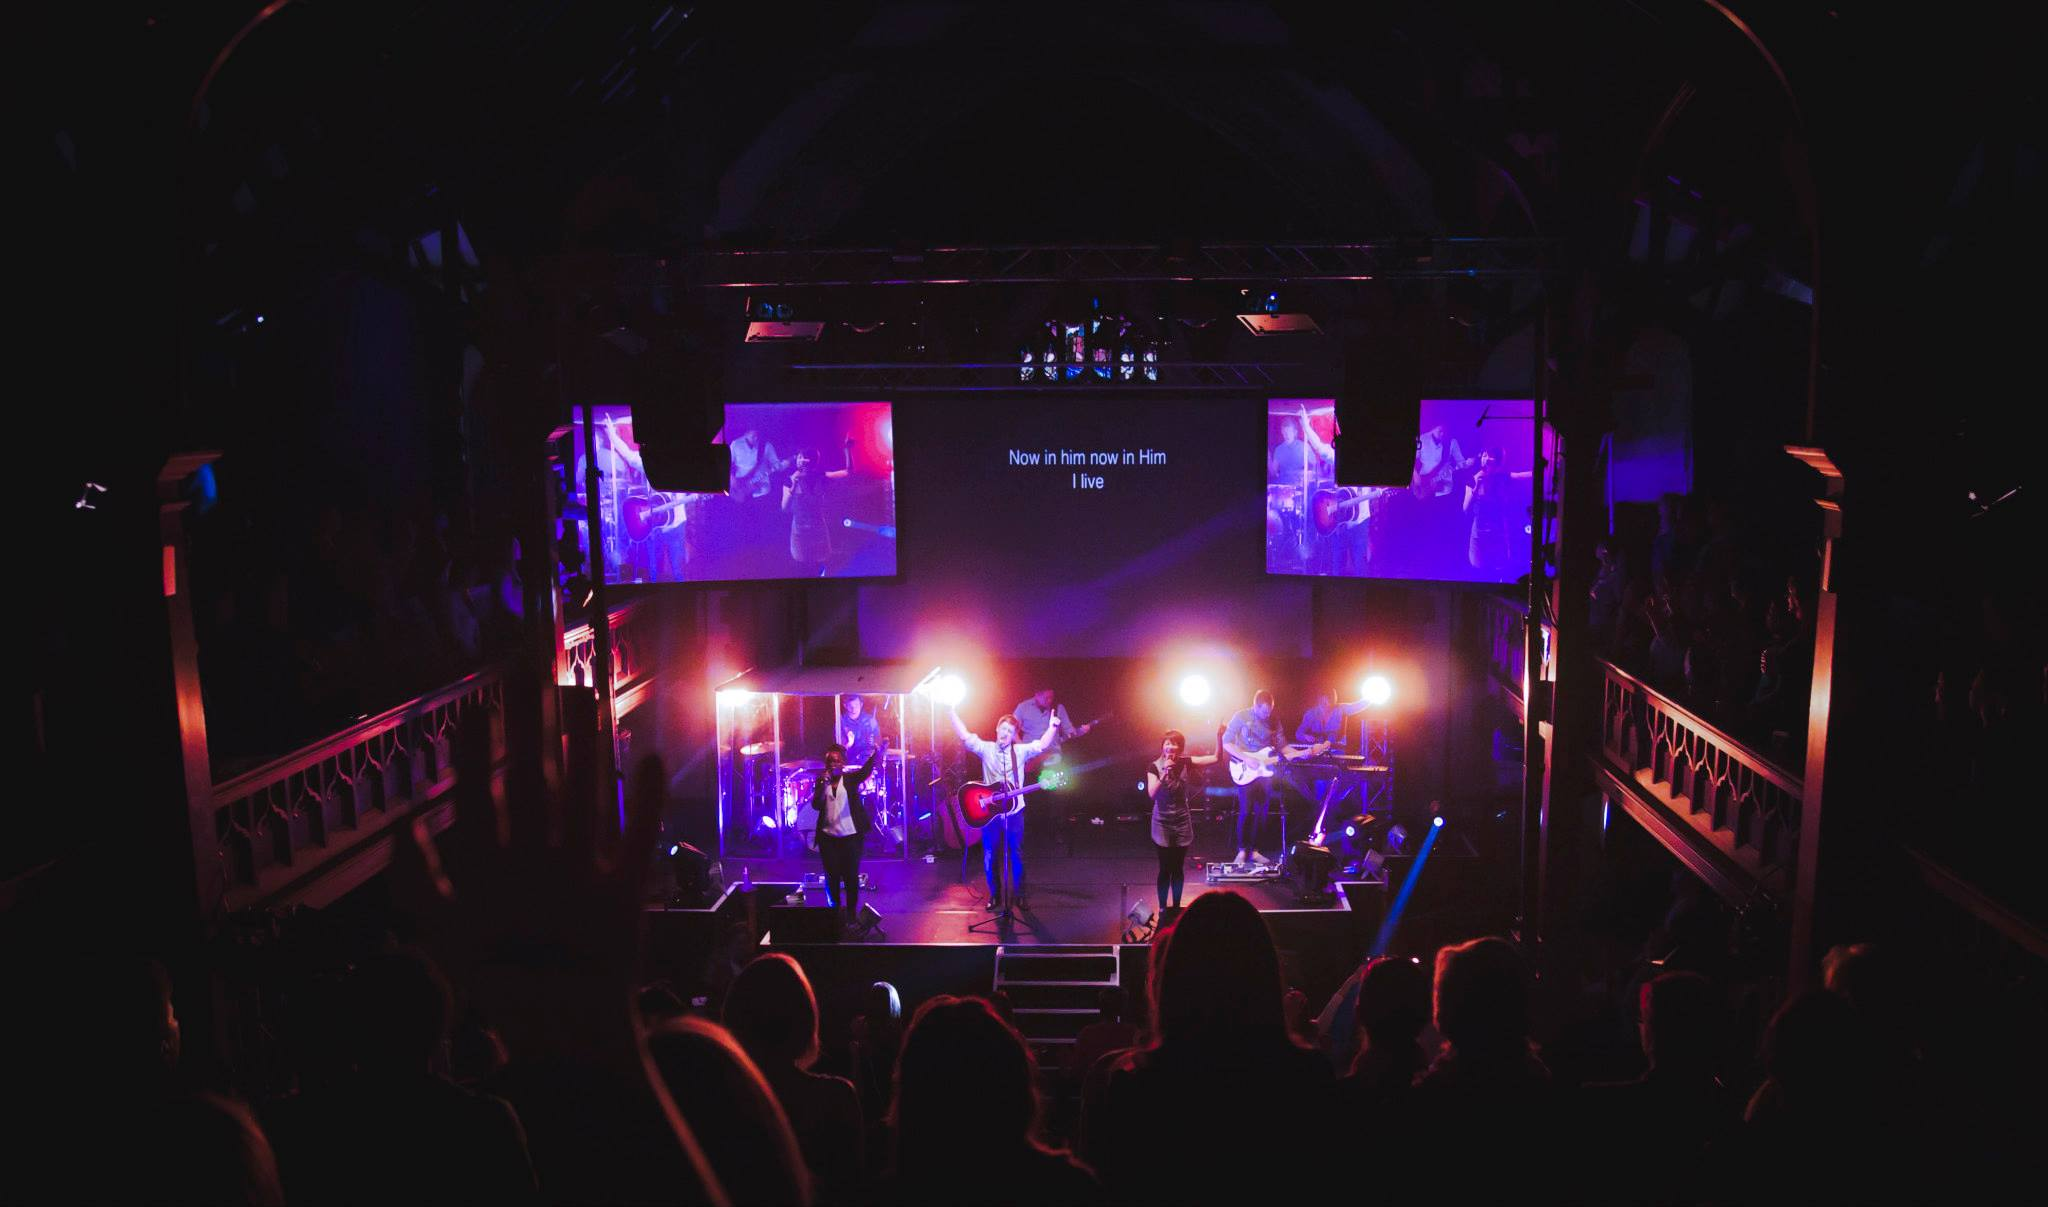 Projection and Lights | Church Stage Design Ideas